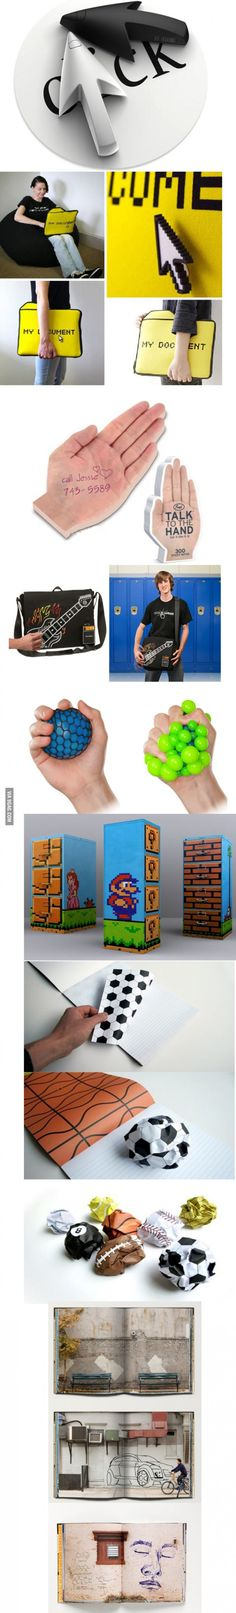 I used to have one of those balls that you squeeze!! They're SO FUN!!!!!